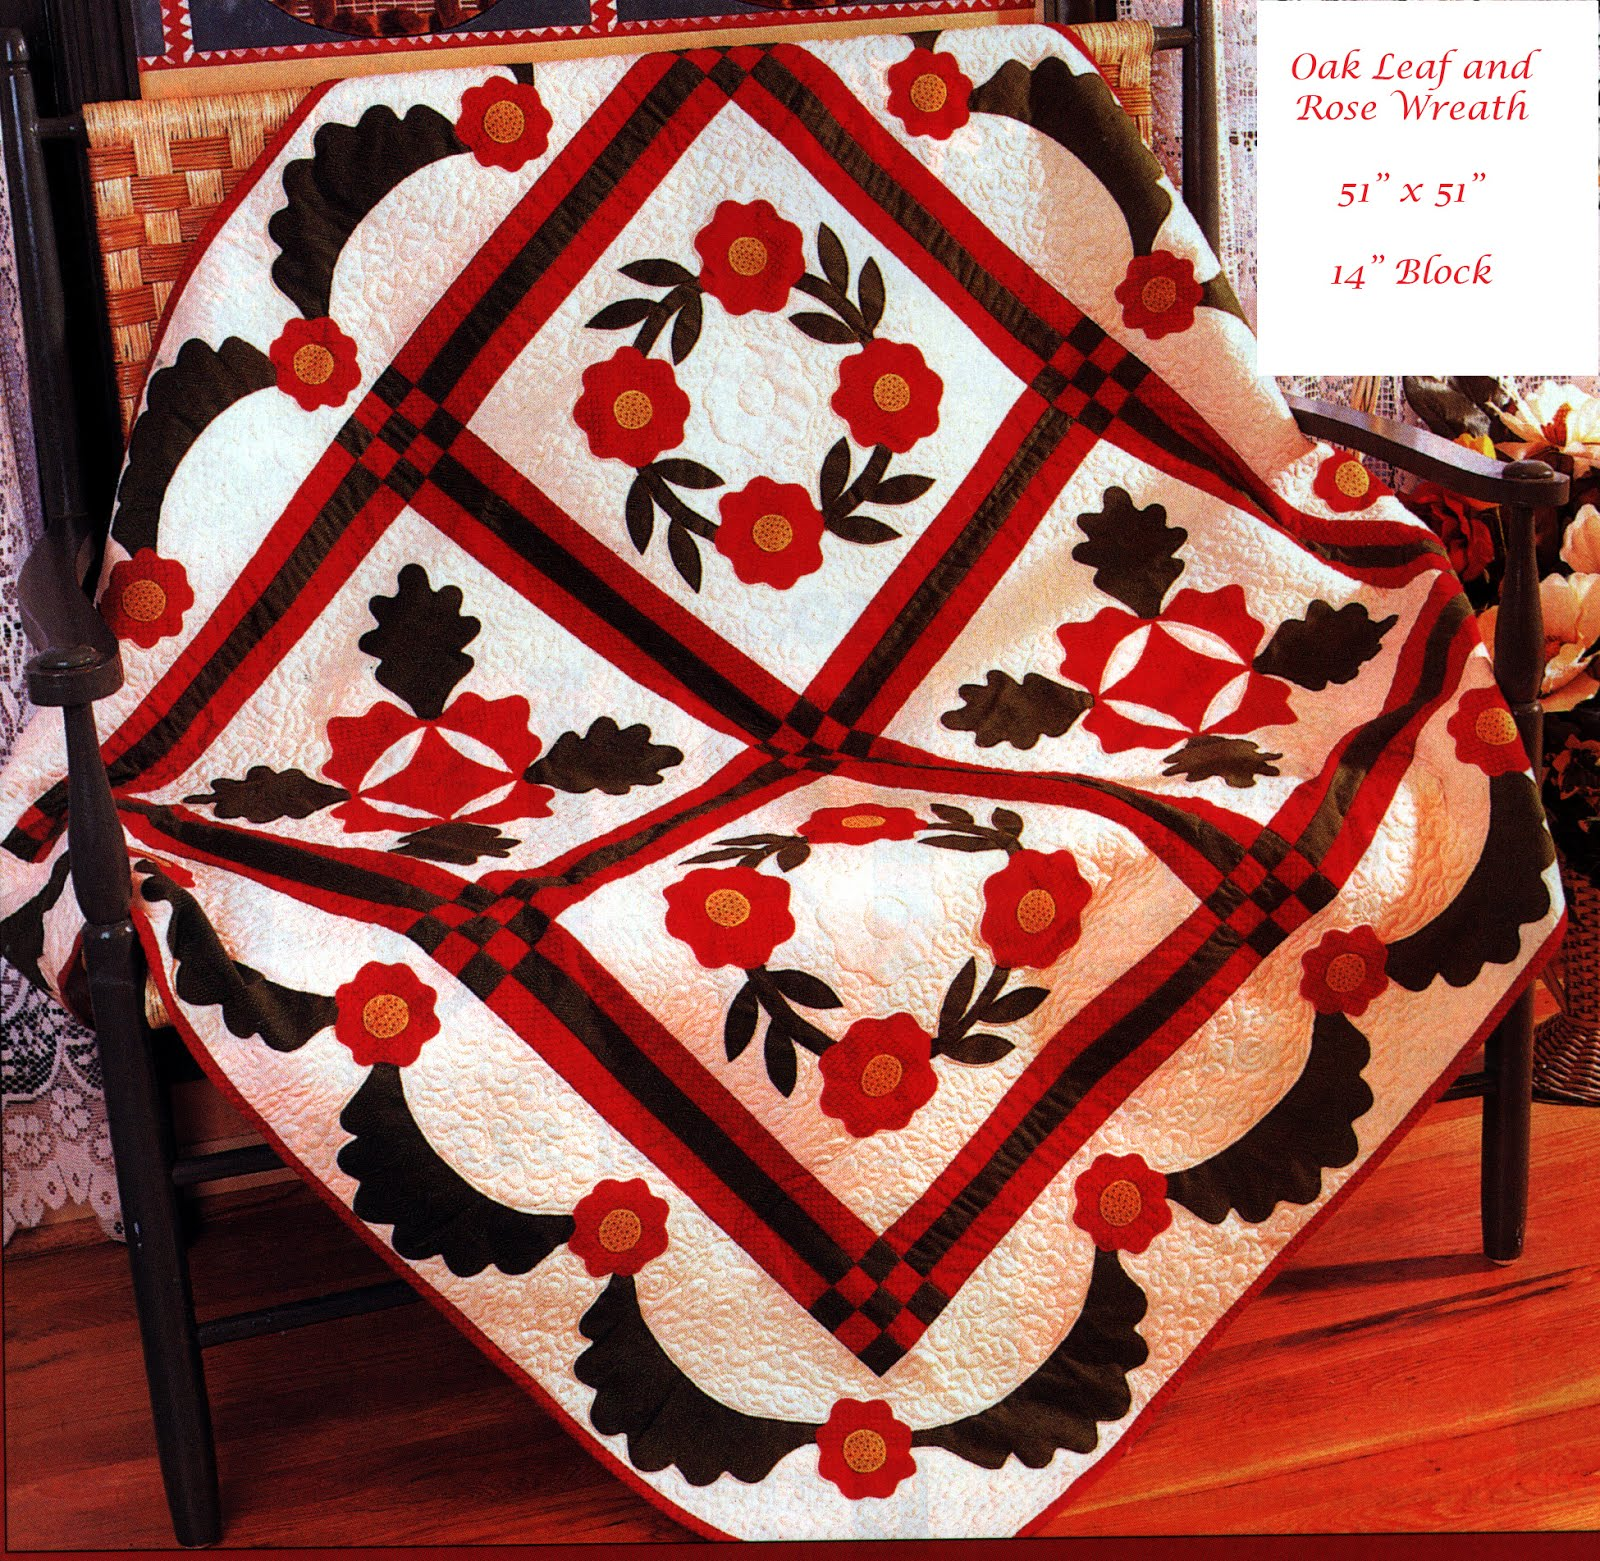 Oak Leaf and Rose Wreath Quilt